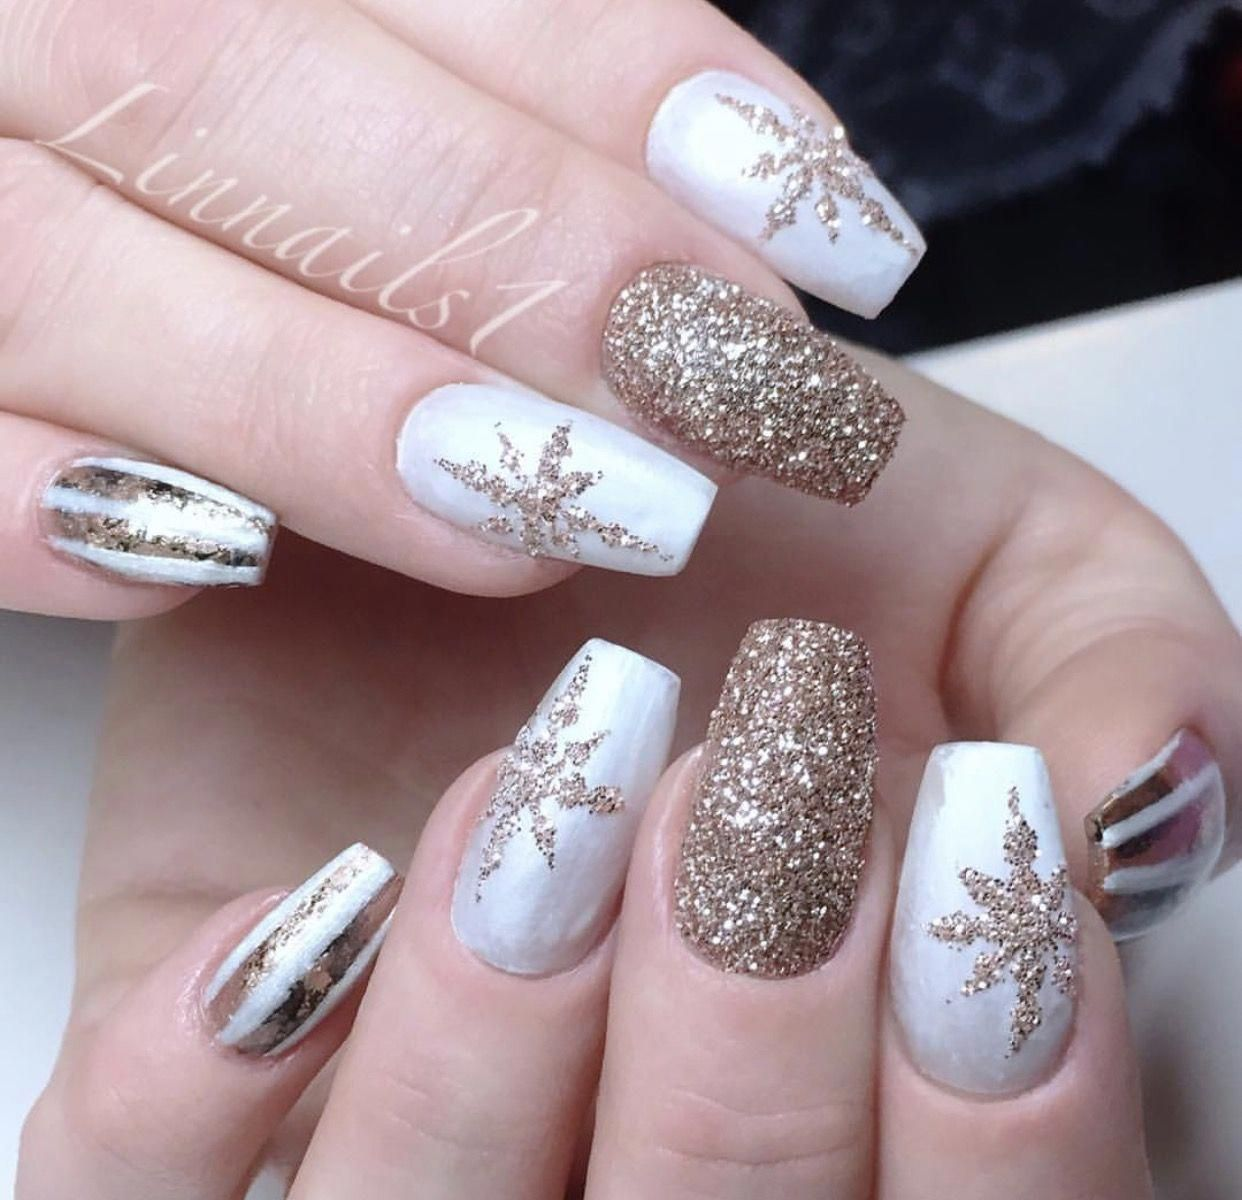 White And Gold Glitter Nail Art With Snowflake Glitter Design Nailart Design Goldglitter White Chri Gold Glitter Nails Christmas Nails Acrylic Xmas Nails